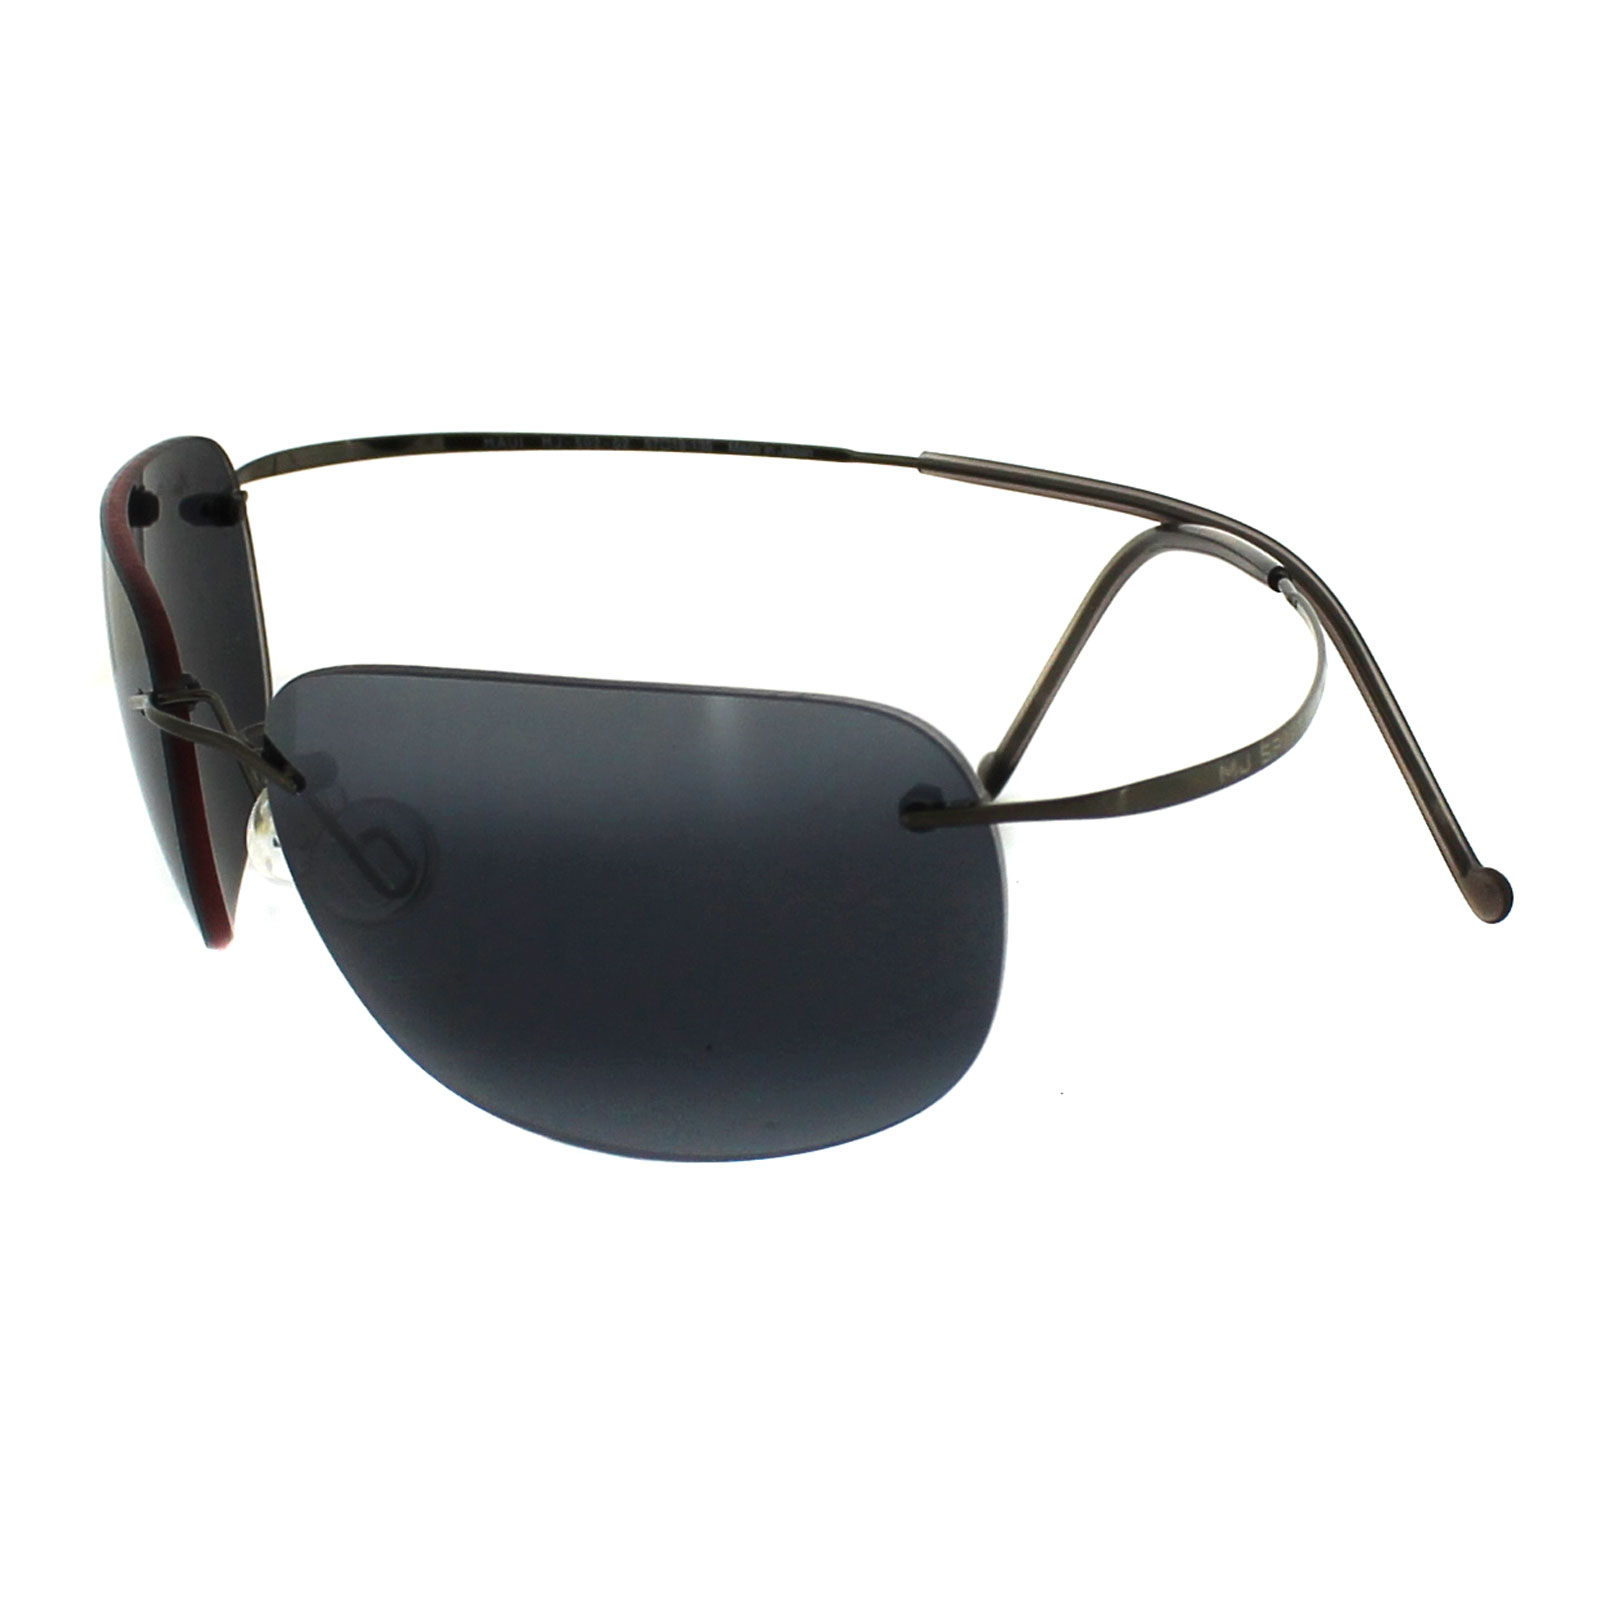 cba58233e7 Maui Jim Sunglasses For Cheap